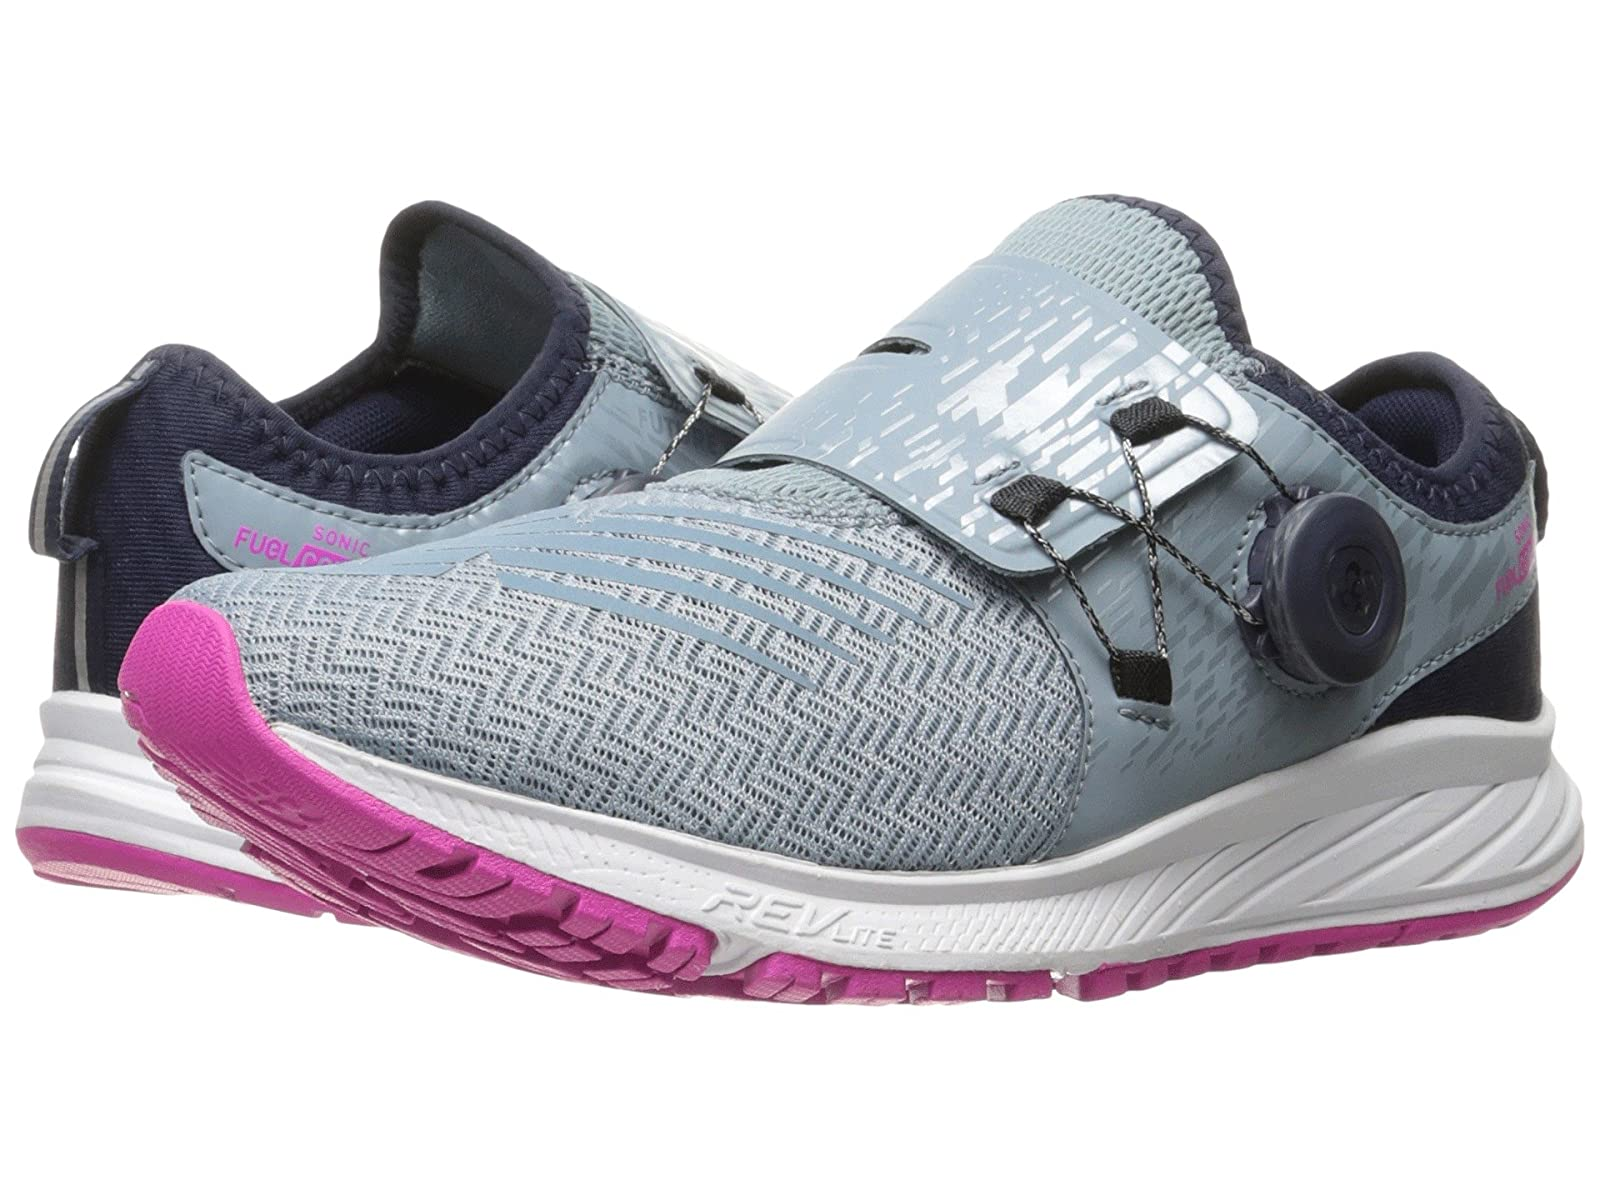 New Balance Sonic V1Cheap and distinctive eye-catching shoes